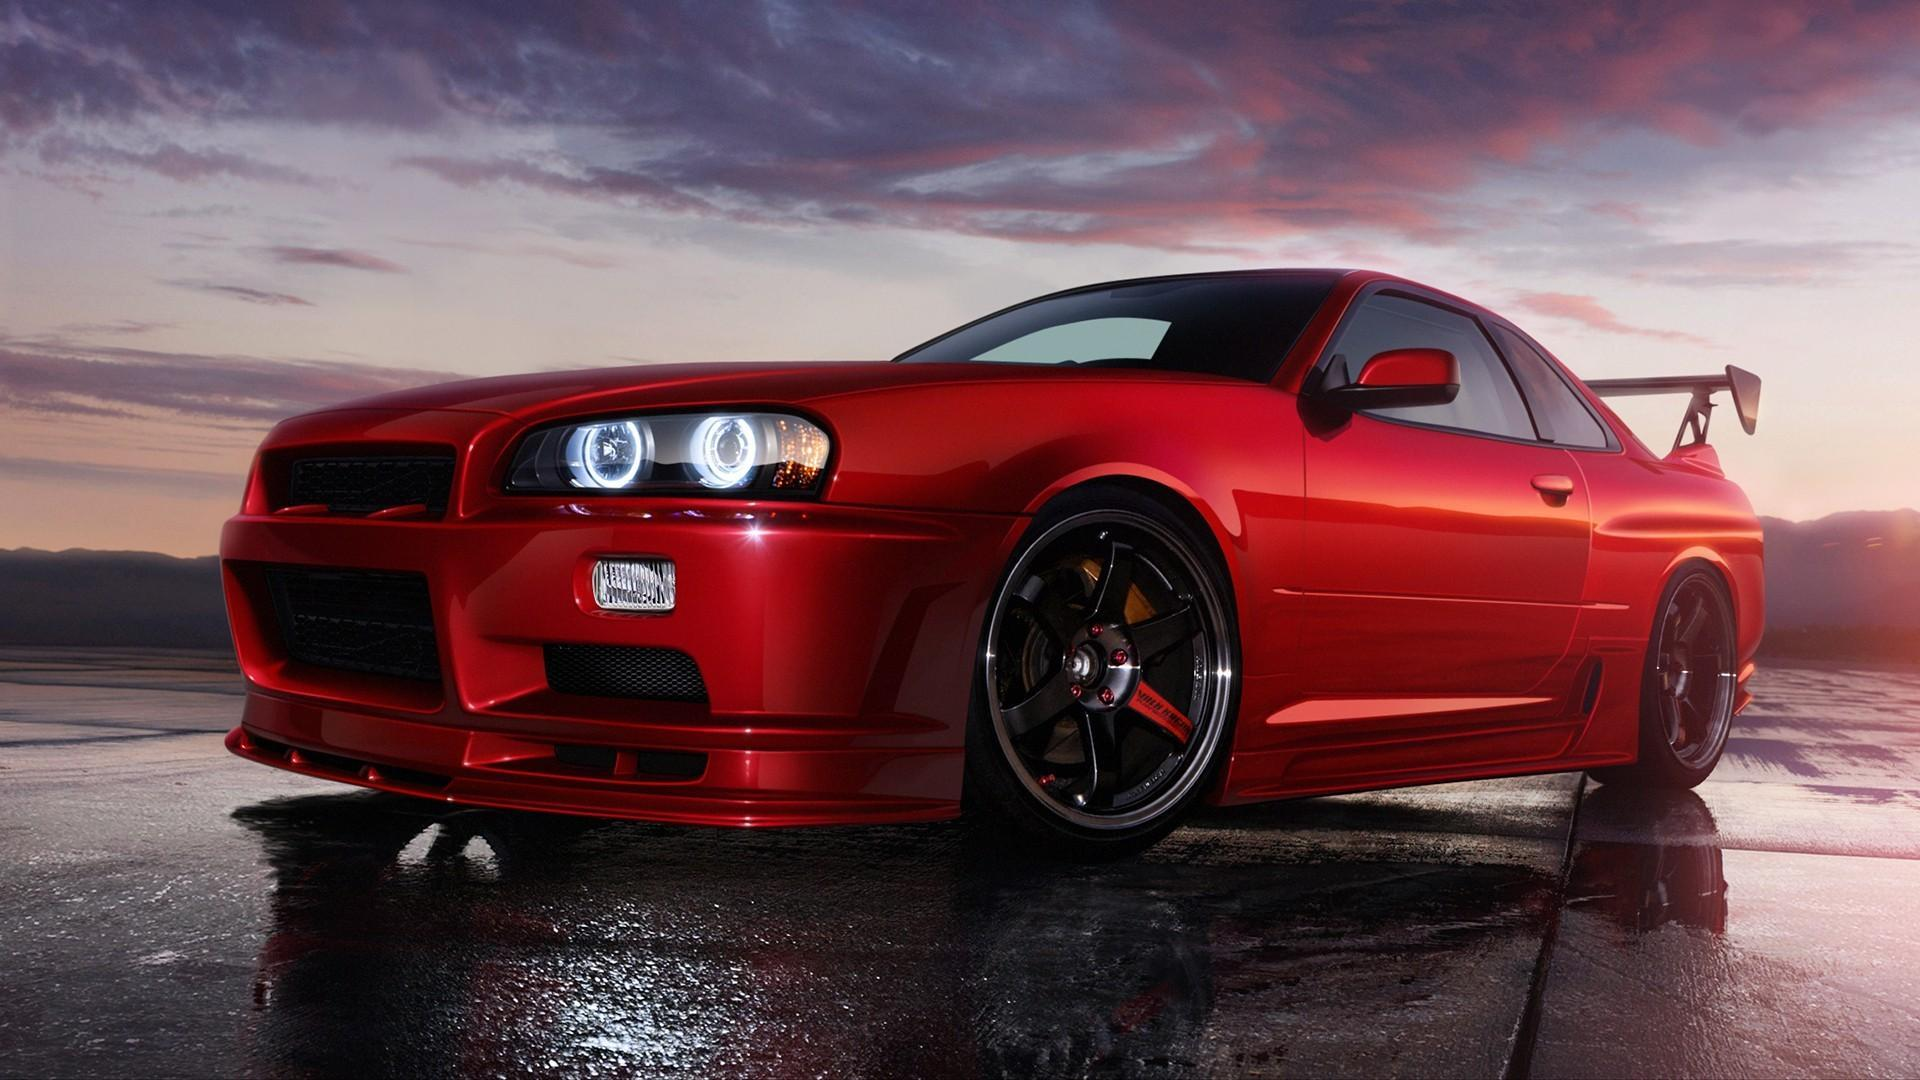 Nissan Skyline Gt R R34 Wallpapers Wallpaper Cave